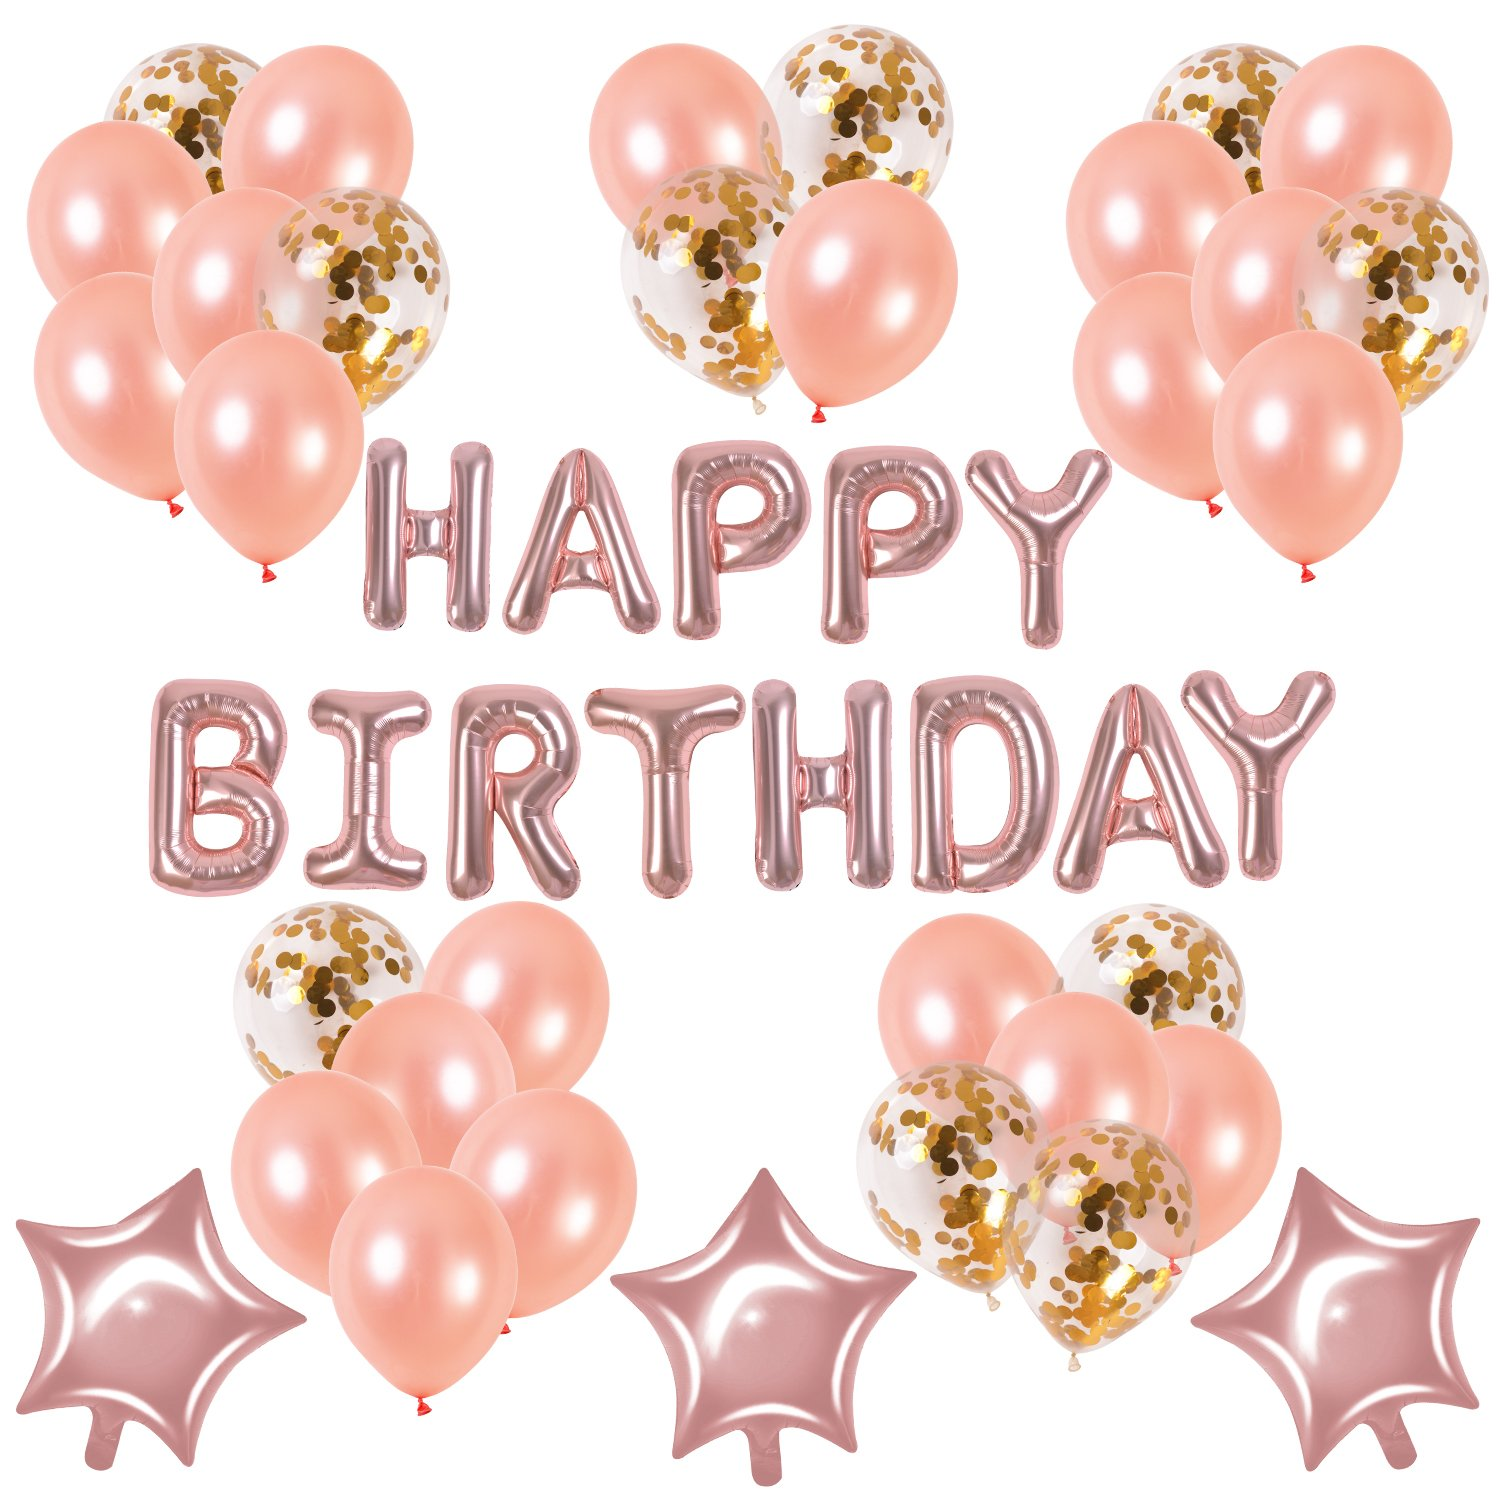 Rose Gold Happy Birthday Balloons Set–Baby Child Adult Cute Party Supplies Birthday Celebration Decorations Latex Confetti and Star Balloons+''HAPPY BIRTHDAY'' Letters Balloon String (happy birthday)